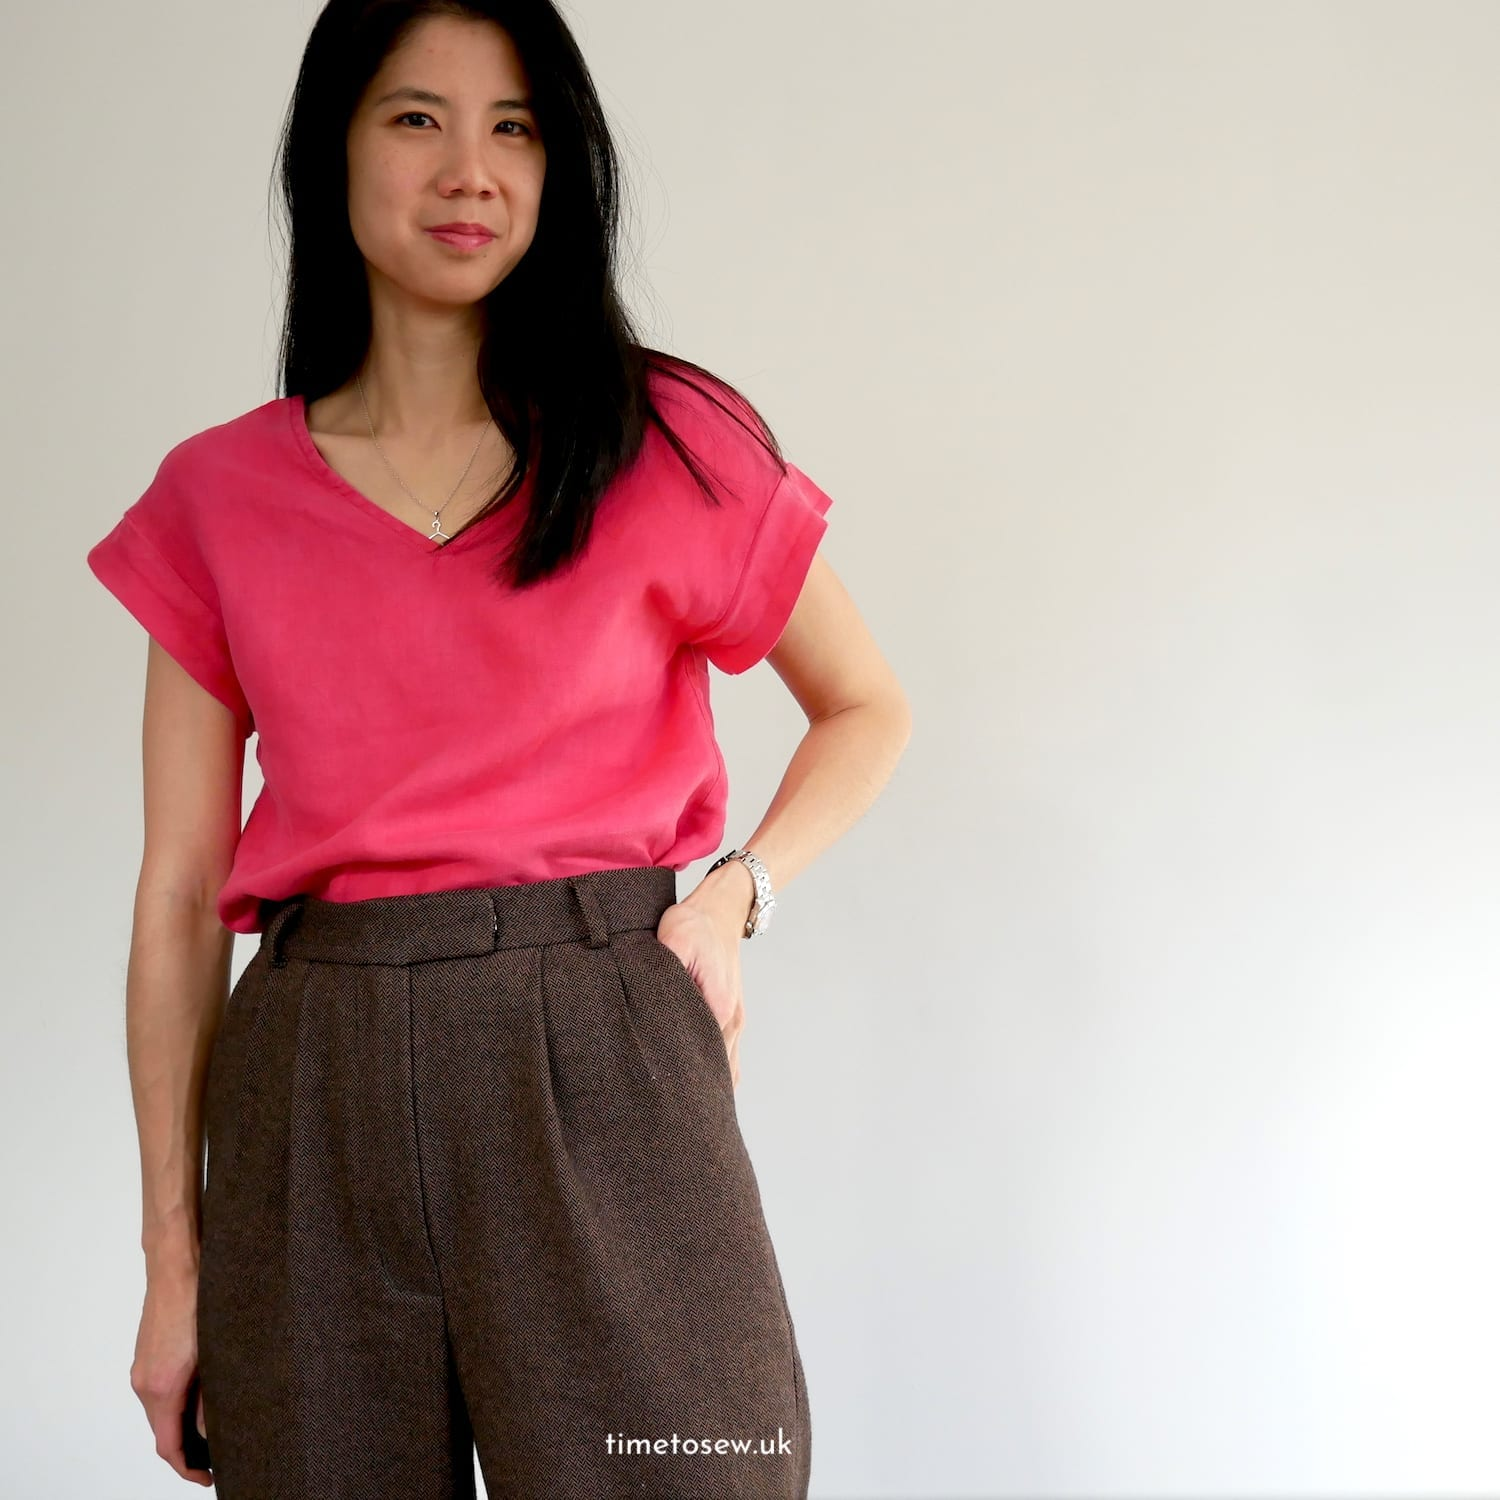 Just Patterns Tatjana in wool by Time to Sew, worn with raspberry linen Fibre Mood Ida top